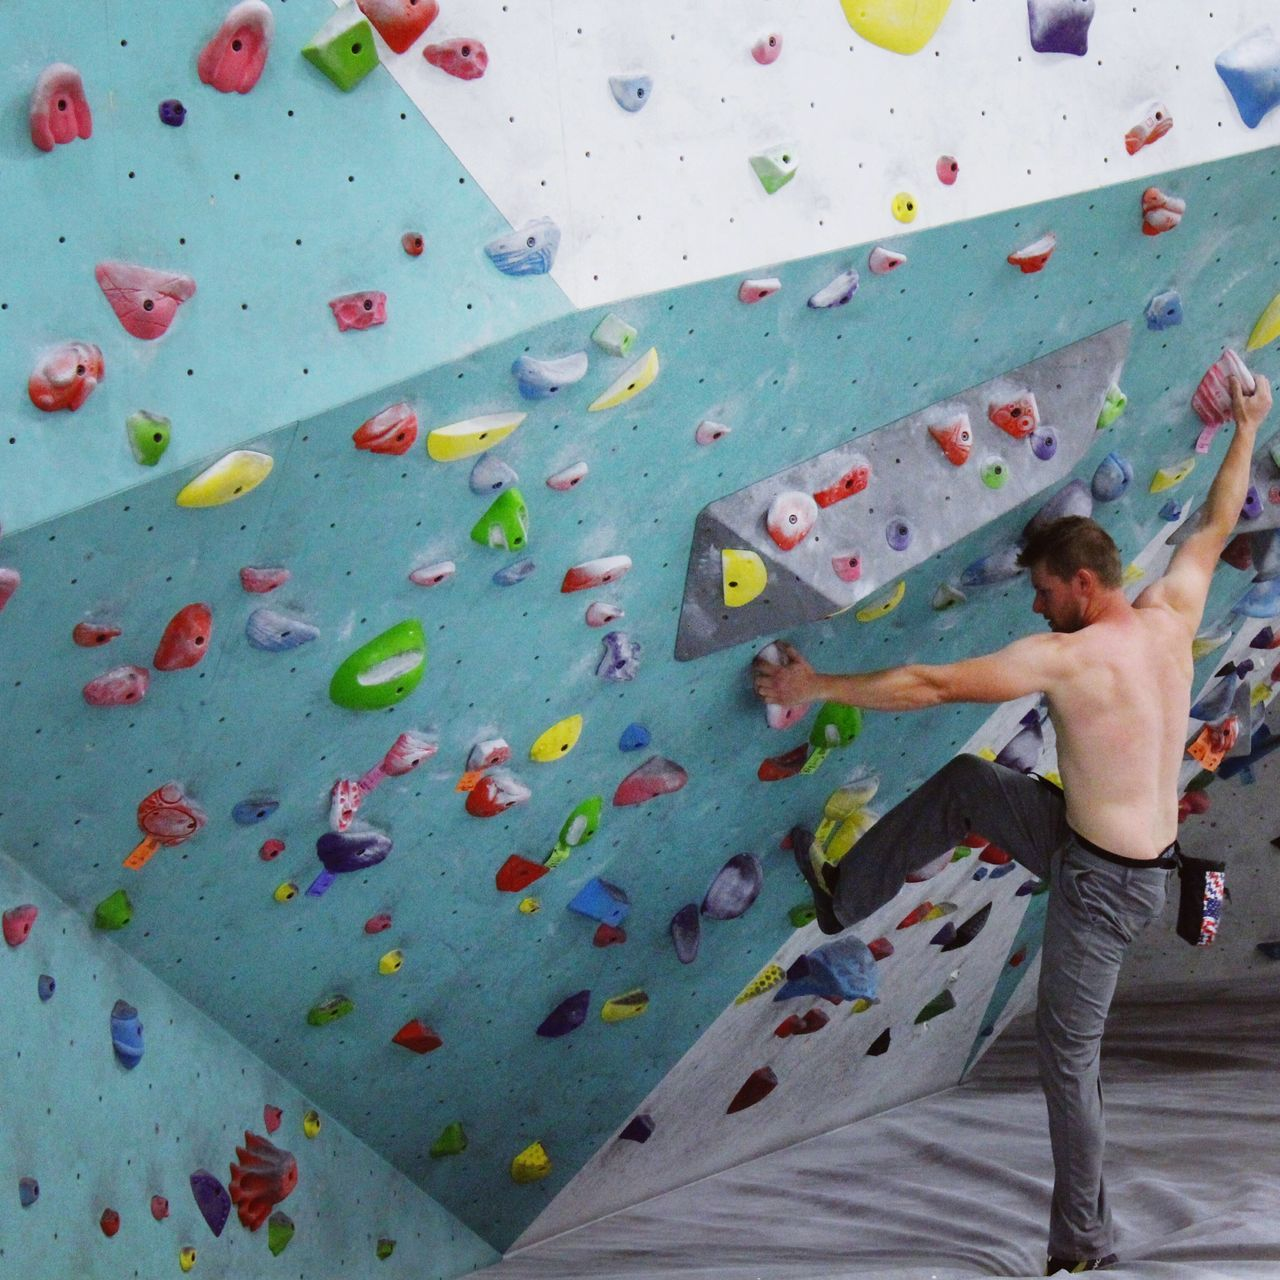 Healthy Lifestyle Climbing Climbing Wall Challenge Exercising Balance Strength Effort Determination Practicing Sport Indoors  Flexibility Endurance One Person Health Club People Skill  Athlete Stretching Self Improvement Wellbeing Indoors  Gripping Rock Climbing